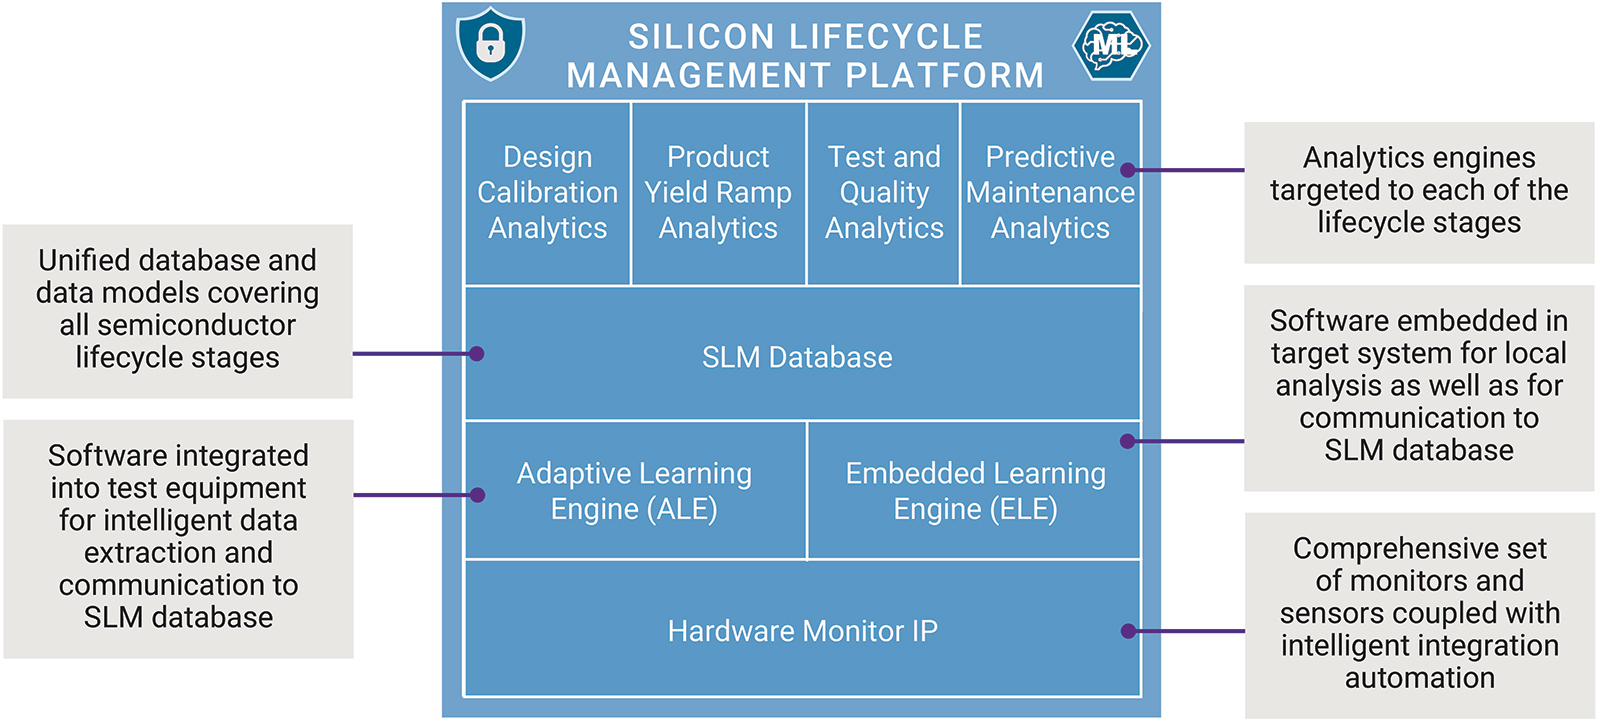 Synopsys Silicon LifeCycle Management analytics engines